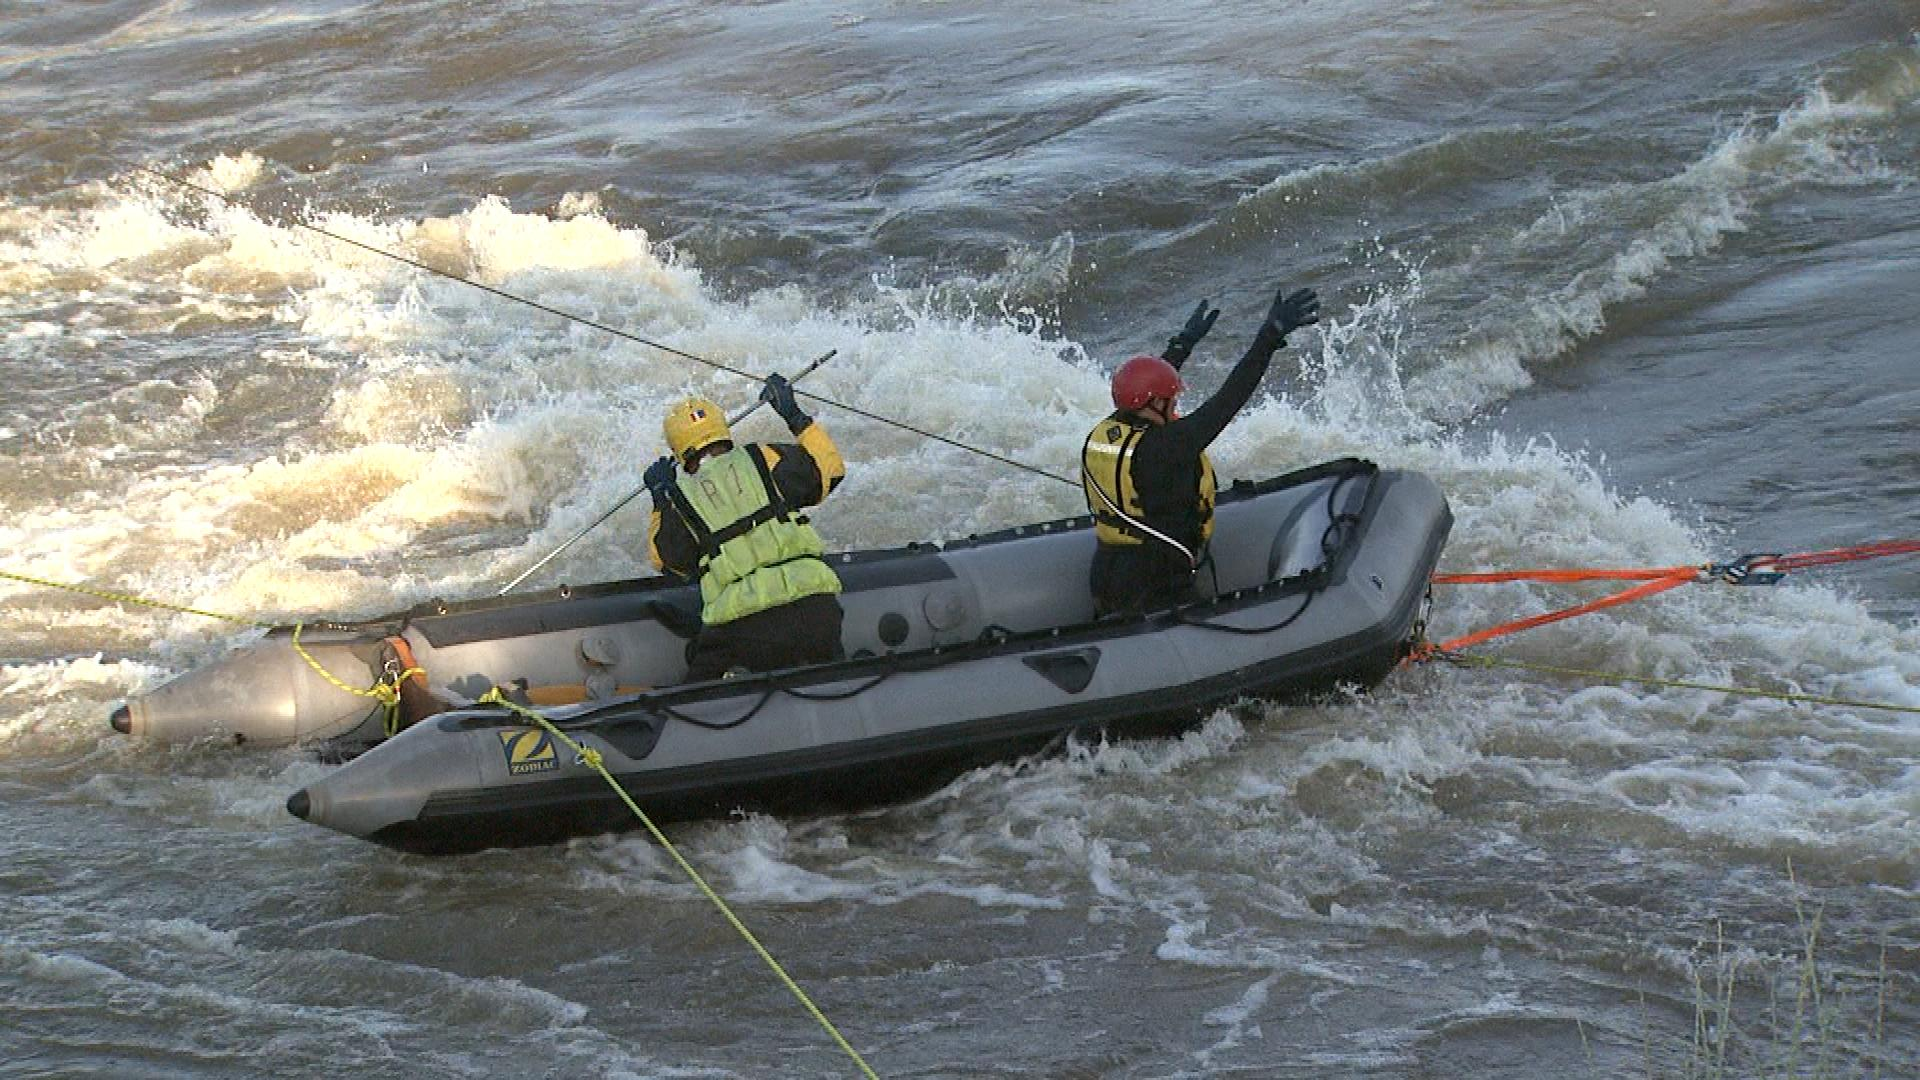 Crews searching the South Platte River (credit: CBS)